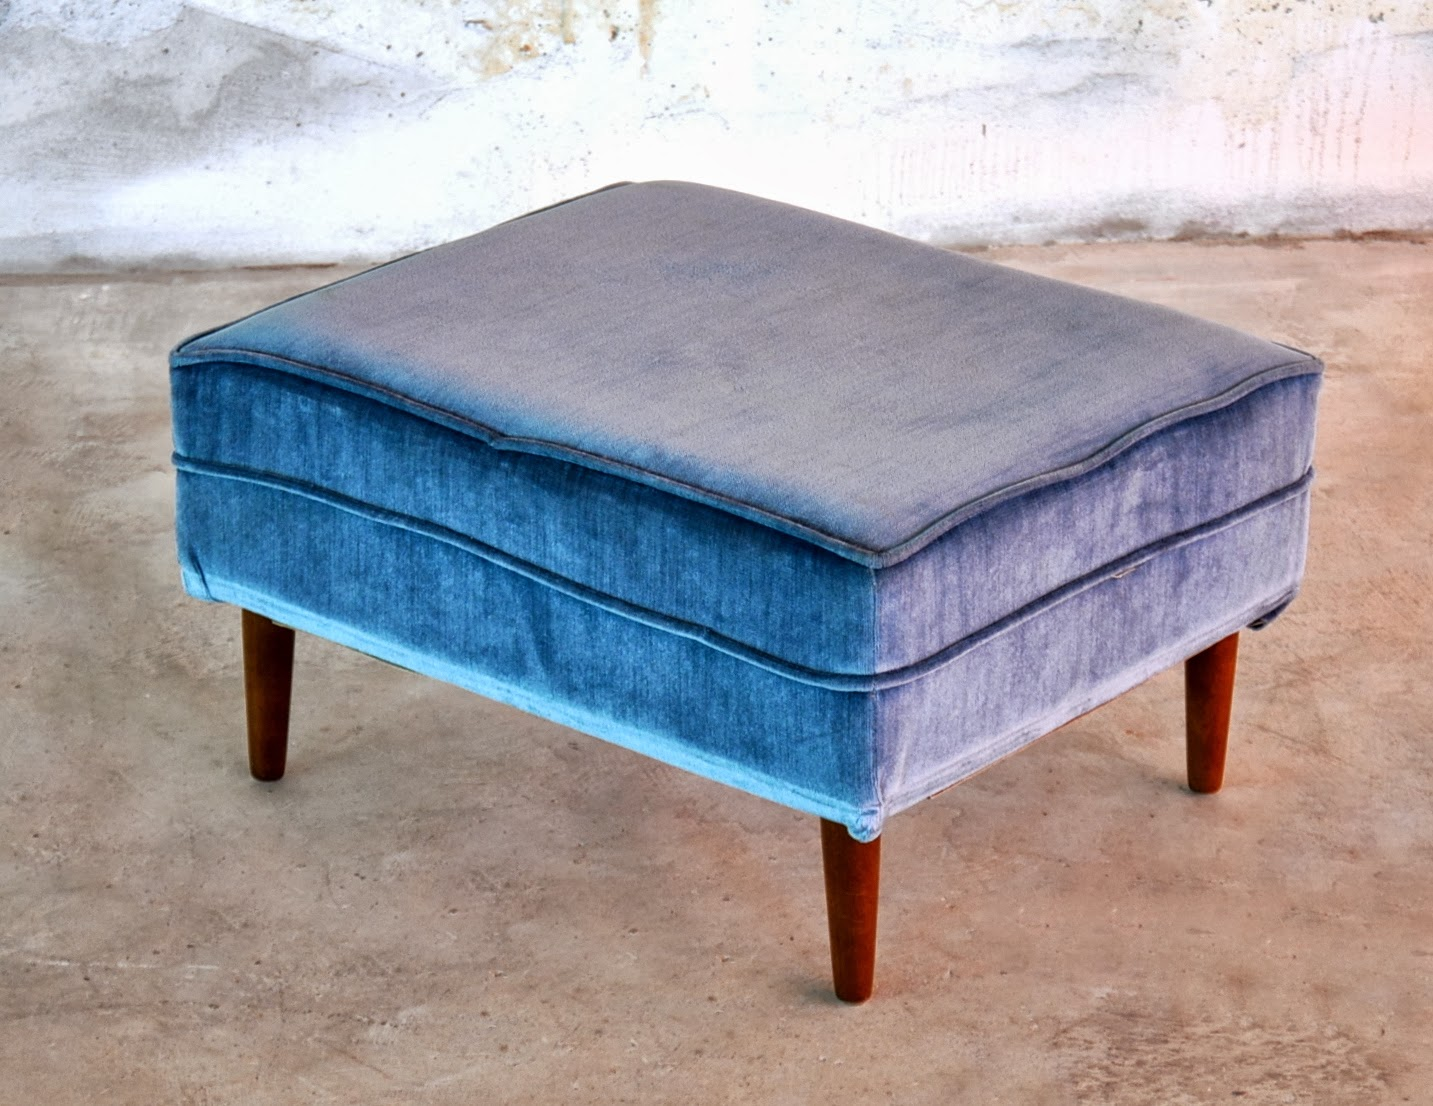 SELECT MODERN: Mid Century Modern Ottoman, Foot Stool or